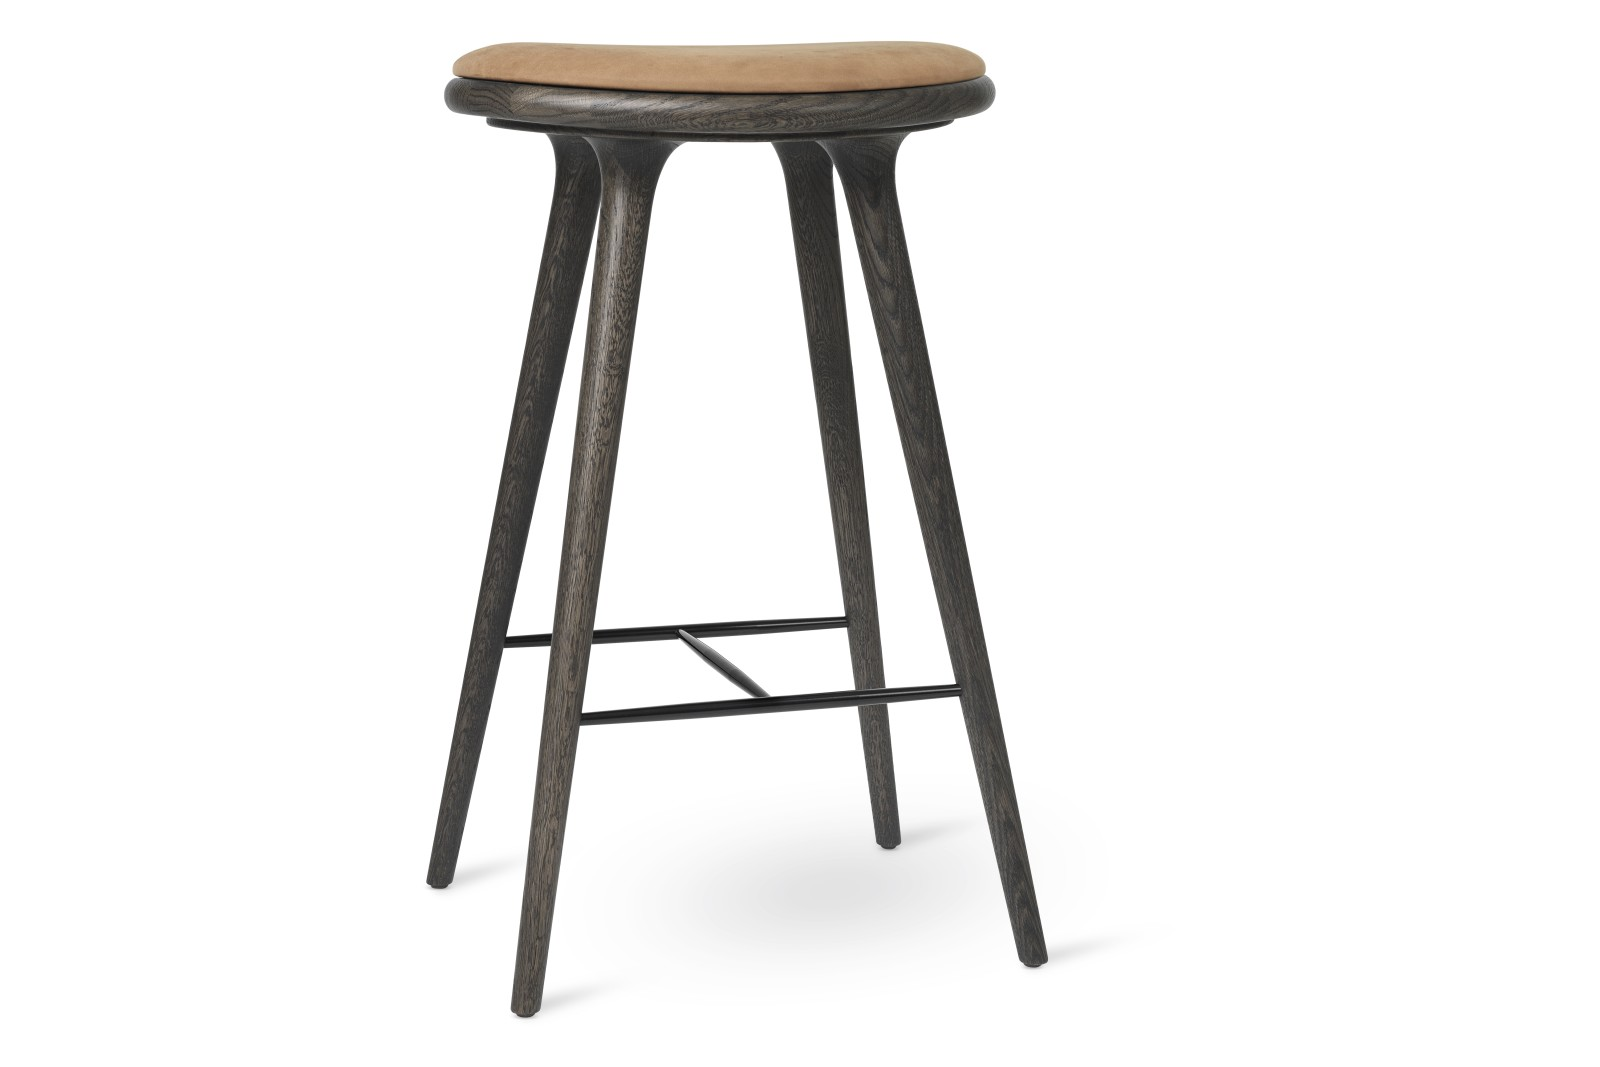 High Stool Sirka Grey Stained Solid Oak, Camel, 74H